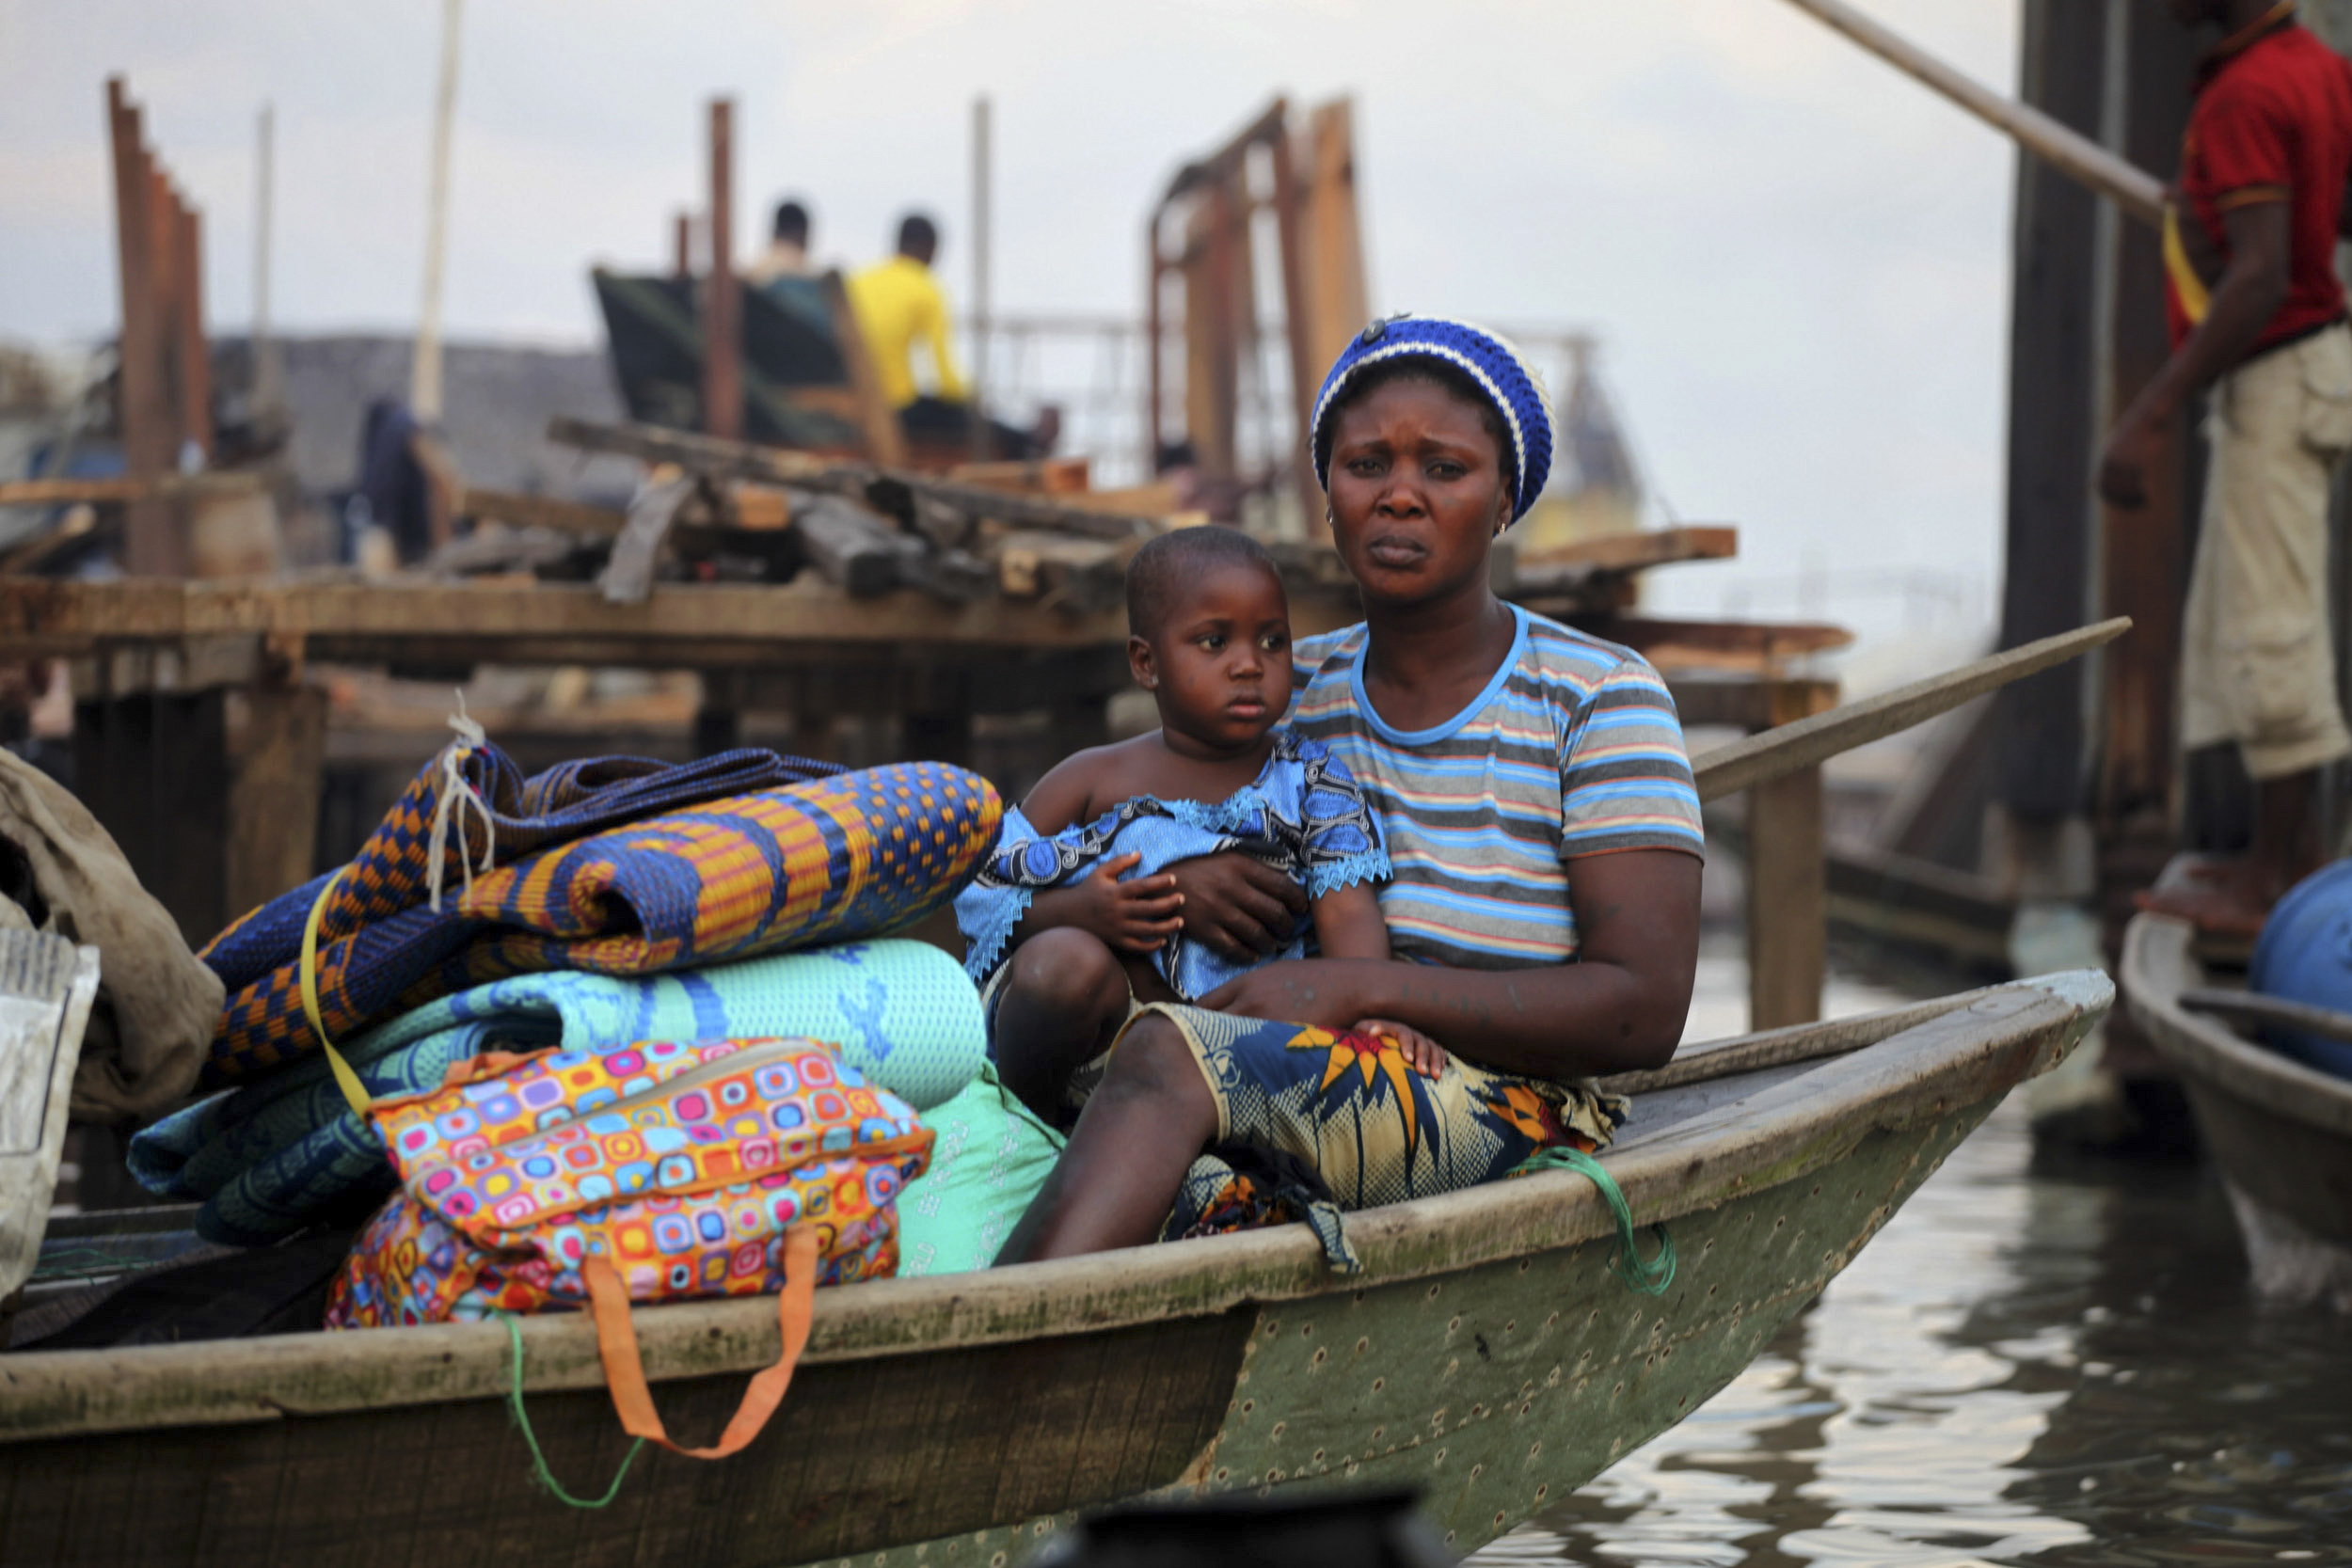 A woman sits in a canoe with her belongings as the metropolitan government begins the demolition of structures in the Makoko riverine community in Lagos July 16, 2012. The structures were deemed illegal as they were built without permission on Lagos Lagoon. REUTERS/Akintunde Akinleye  (NIGERIA - Tags: POLITICS SOCIETY POVERTY) - GM1E87H0HZK01